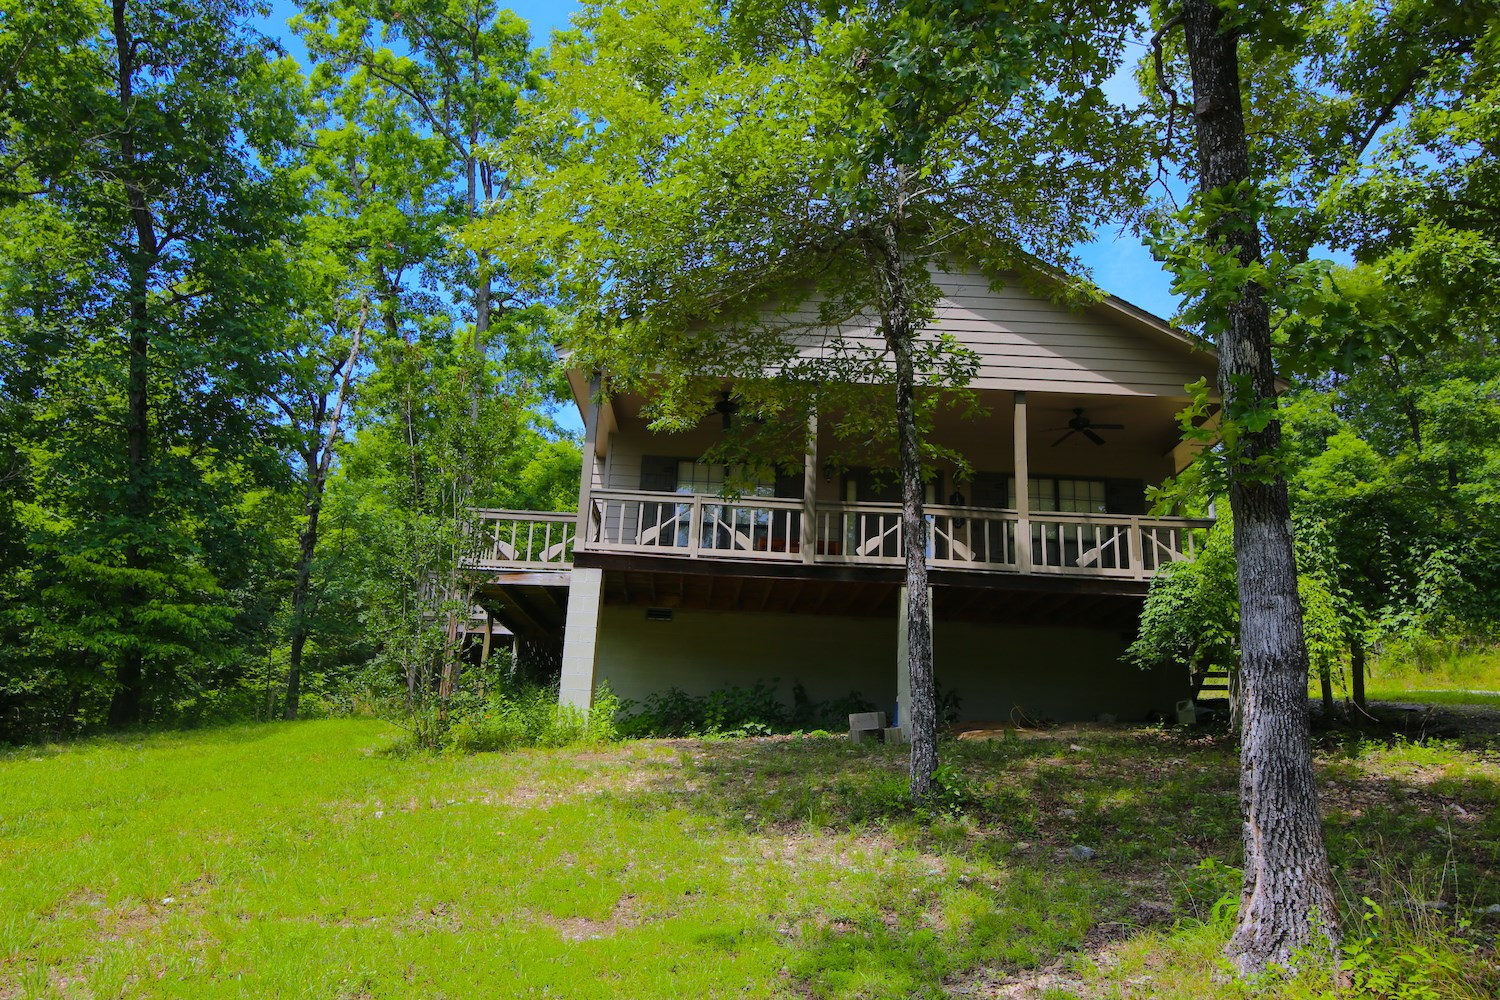 Home for Sale Near Norfork Lake